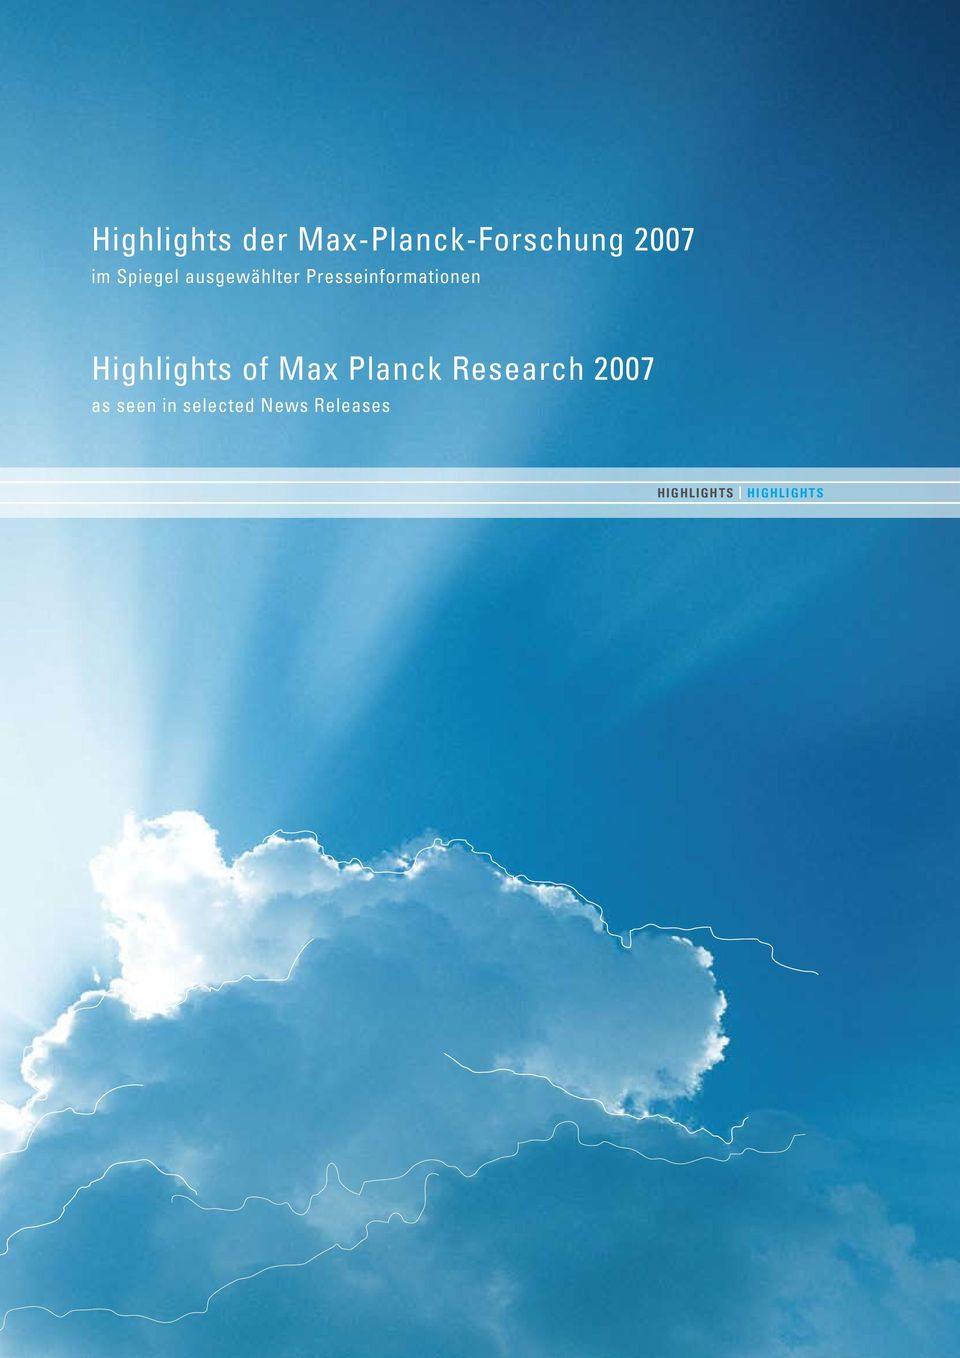 Highlights of Max Planck Research 2007 as